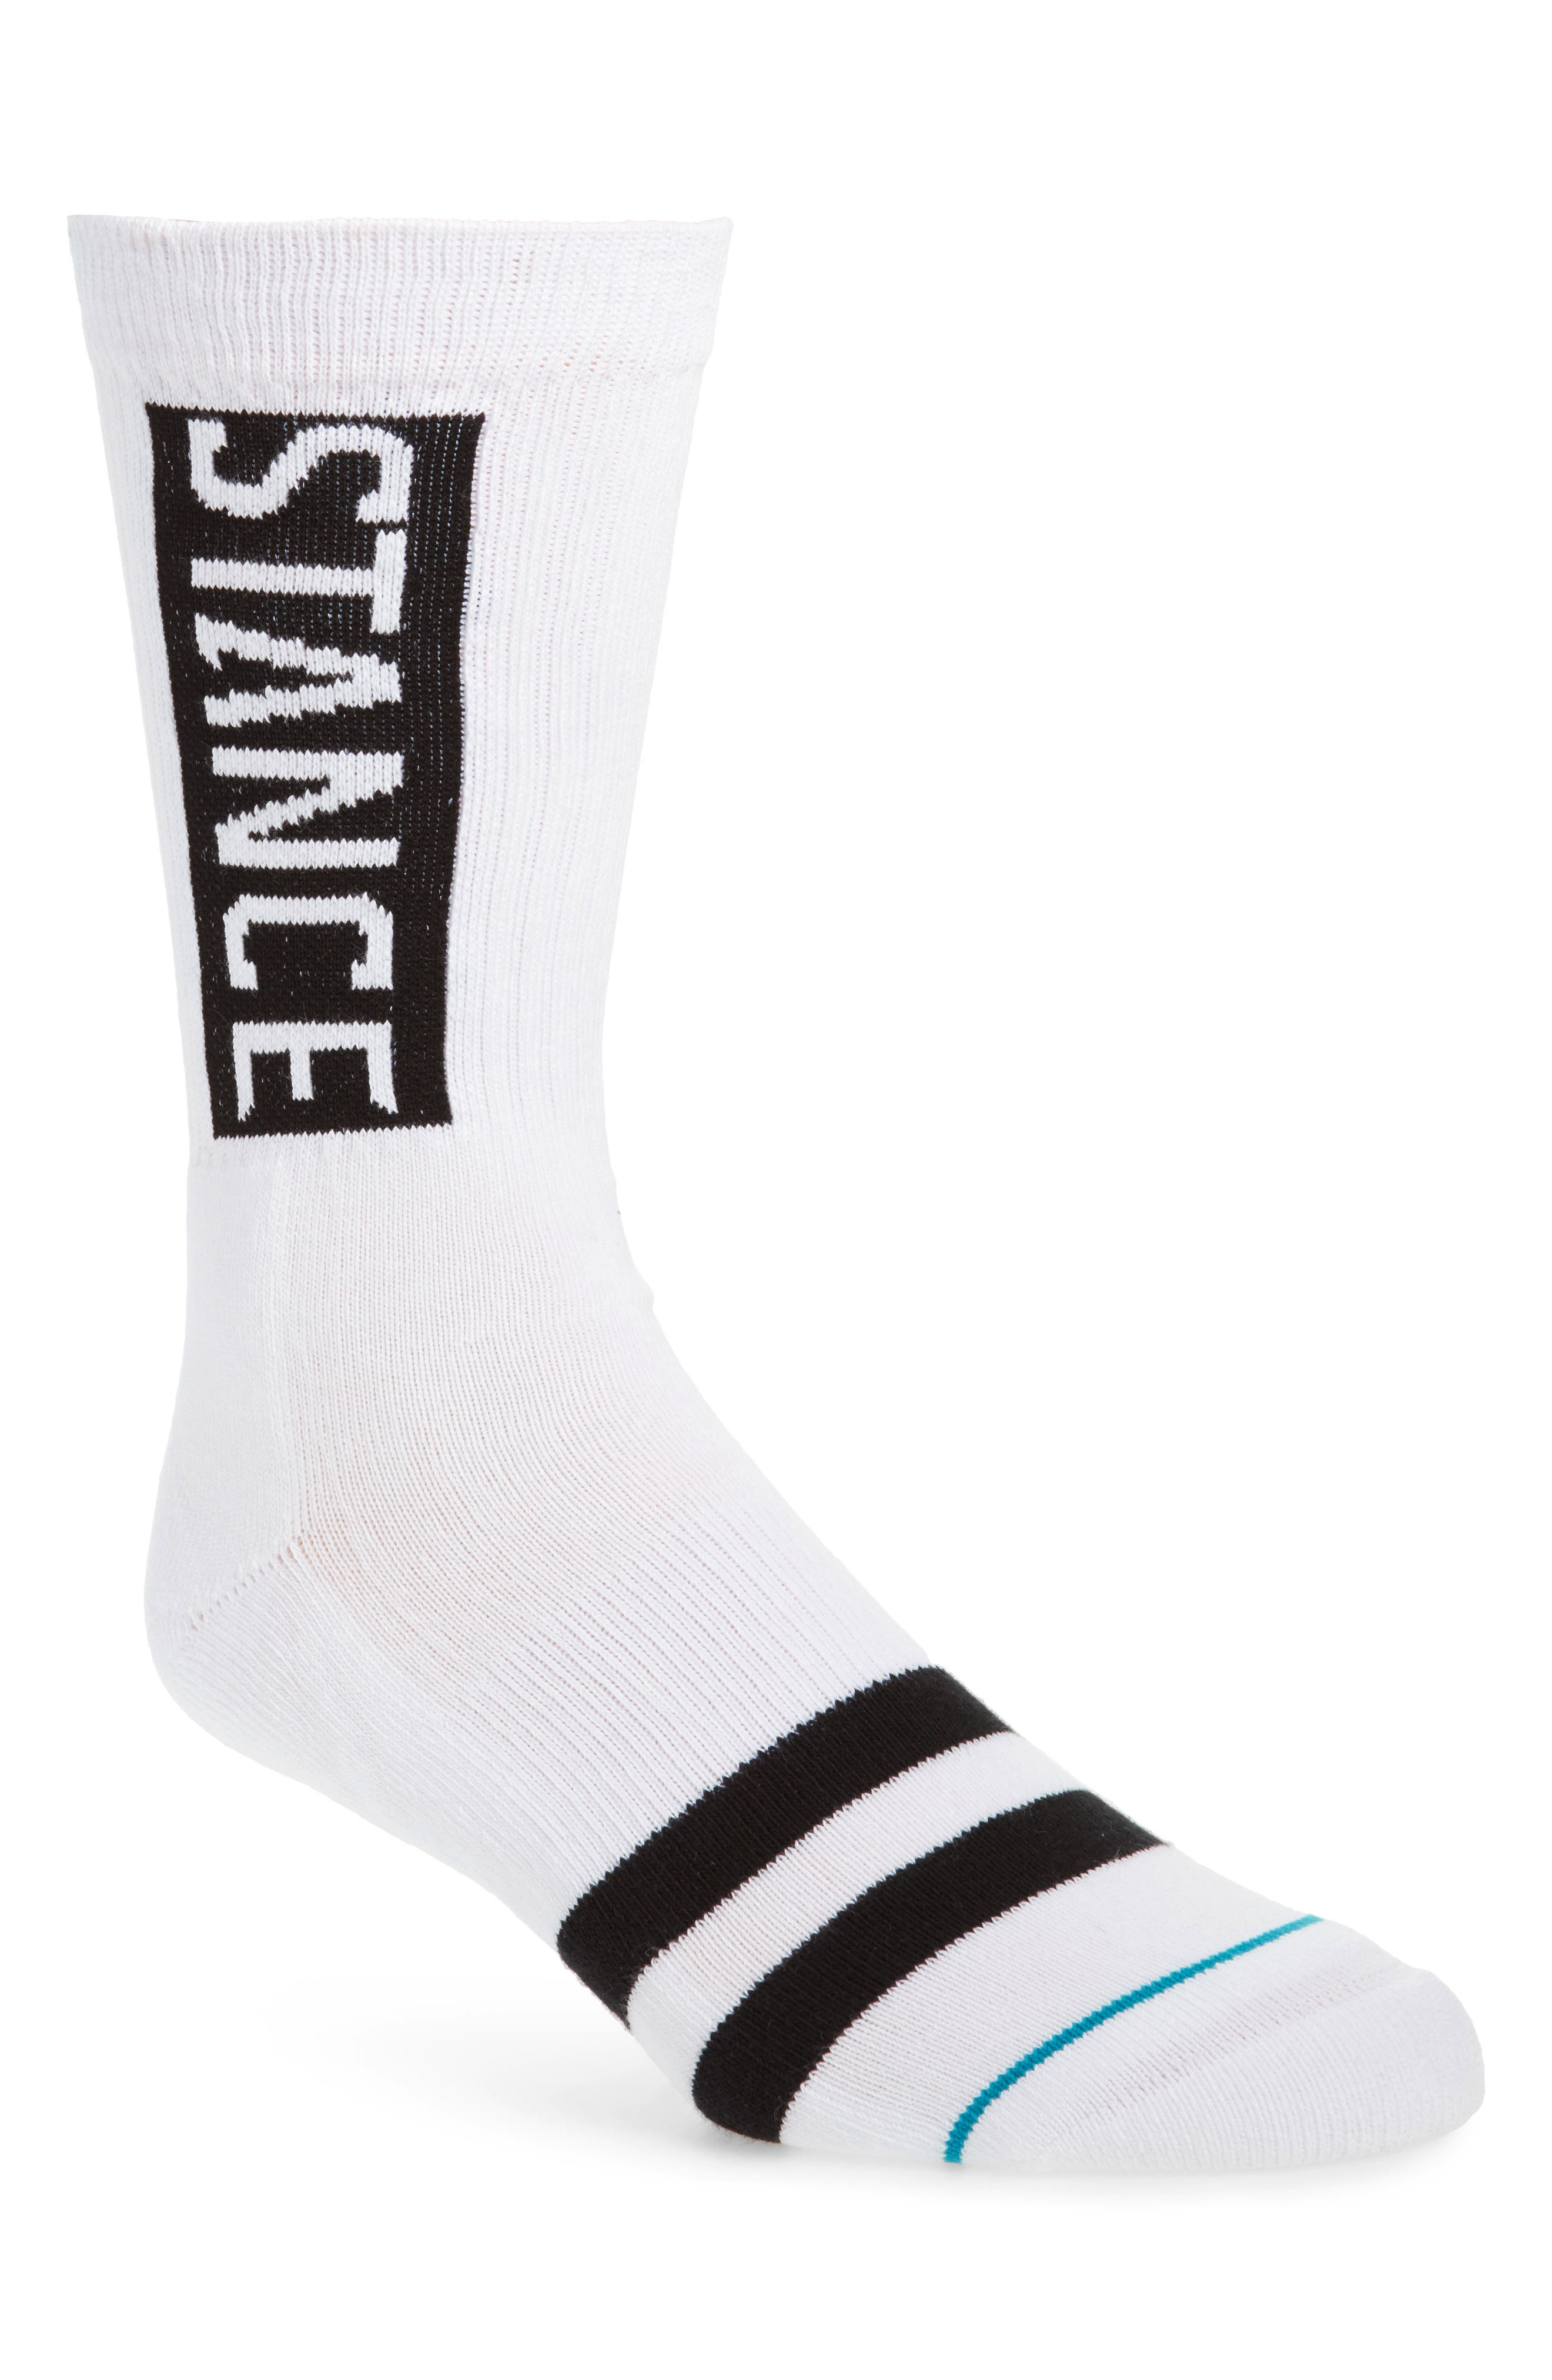 OG Crew Socks,                         Main,                         color, White